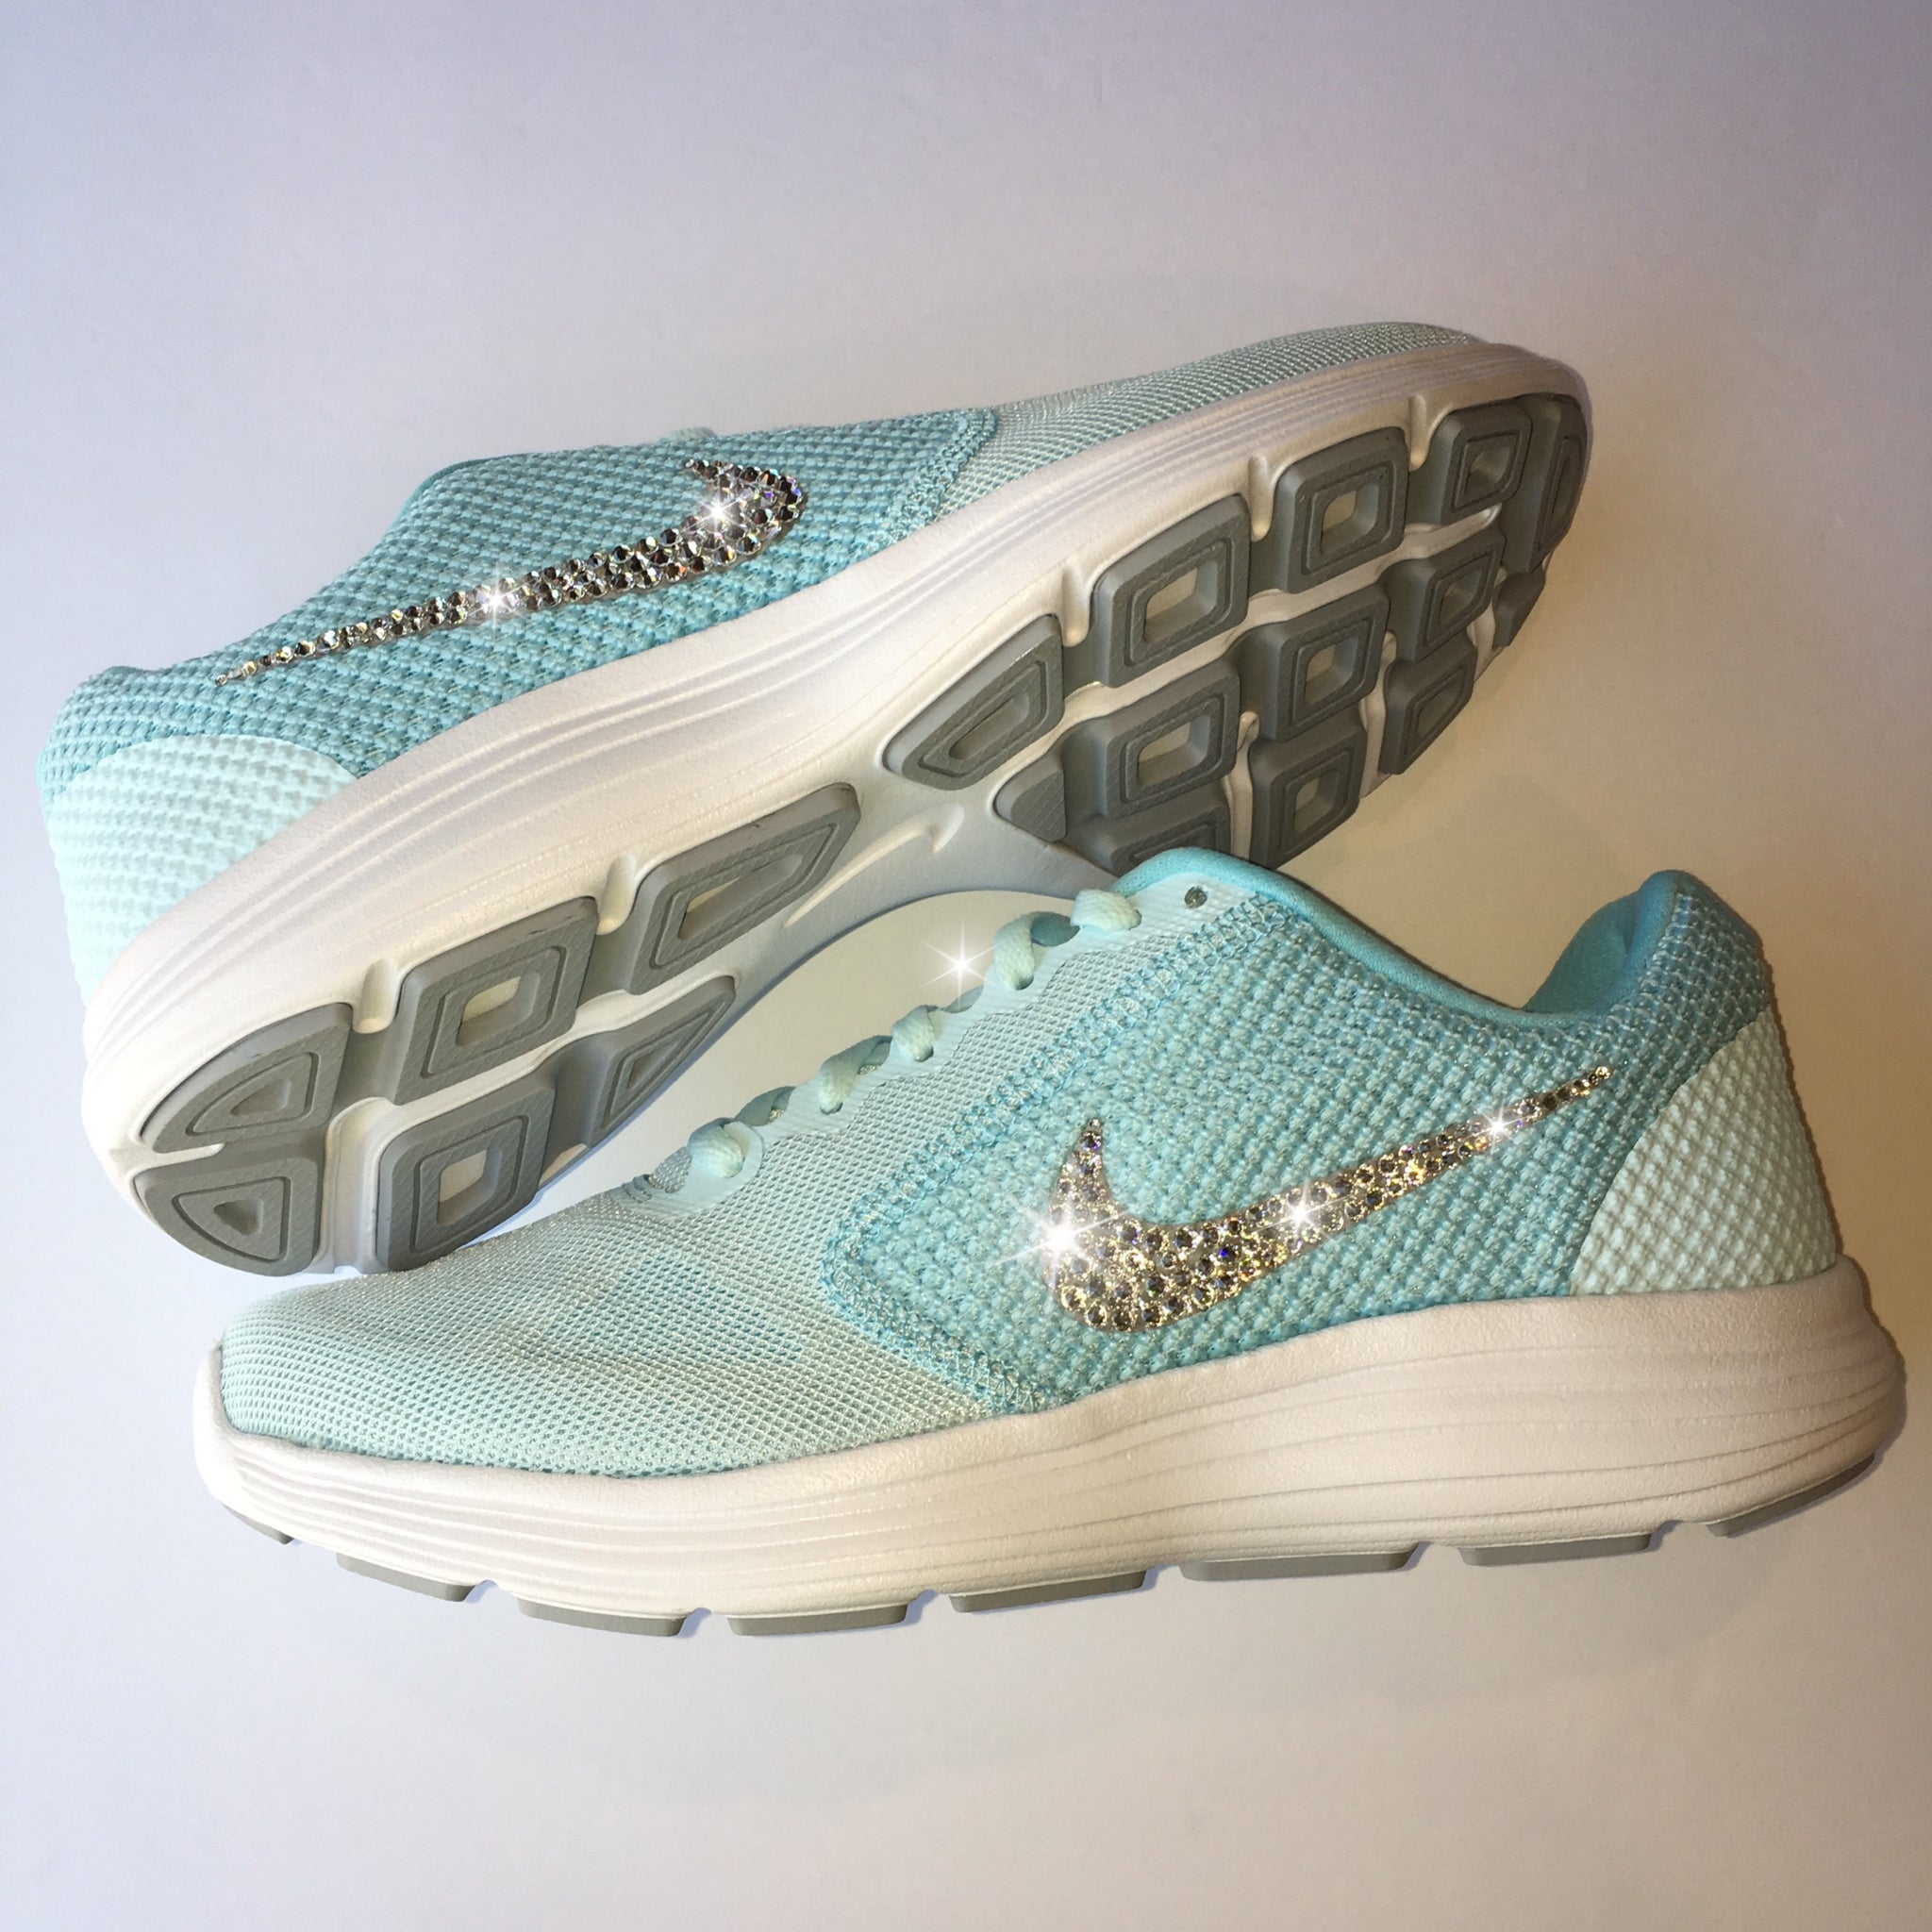 cheap for discount d087f 02a9e ... Bling Nike Revolution 3 Shoes with Swarovski Crystals   Tiffany Blue    Bedazzled with Authentic Swarovski ...